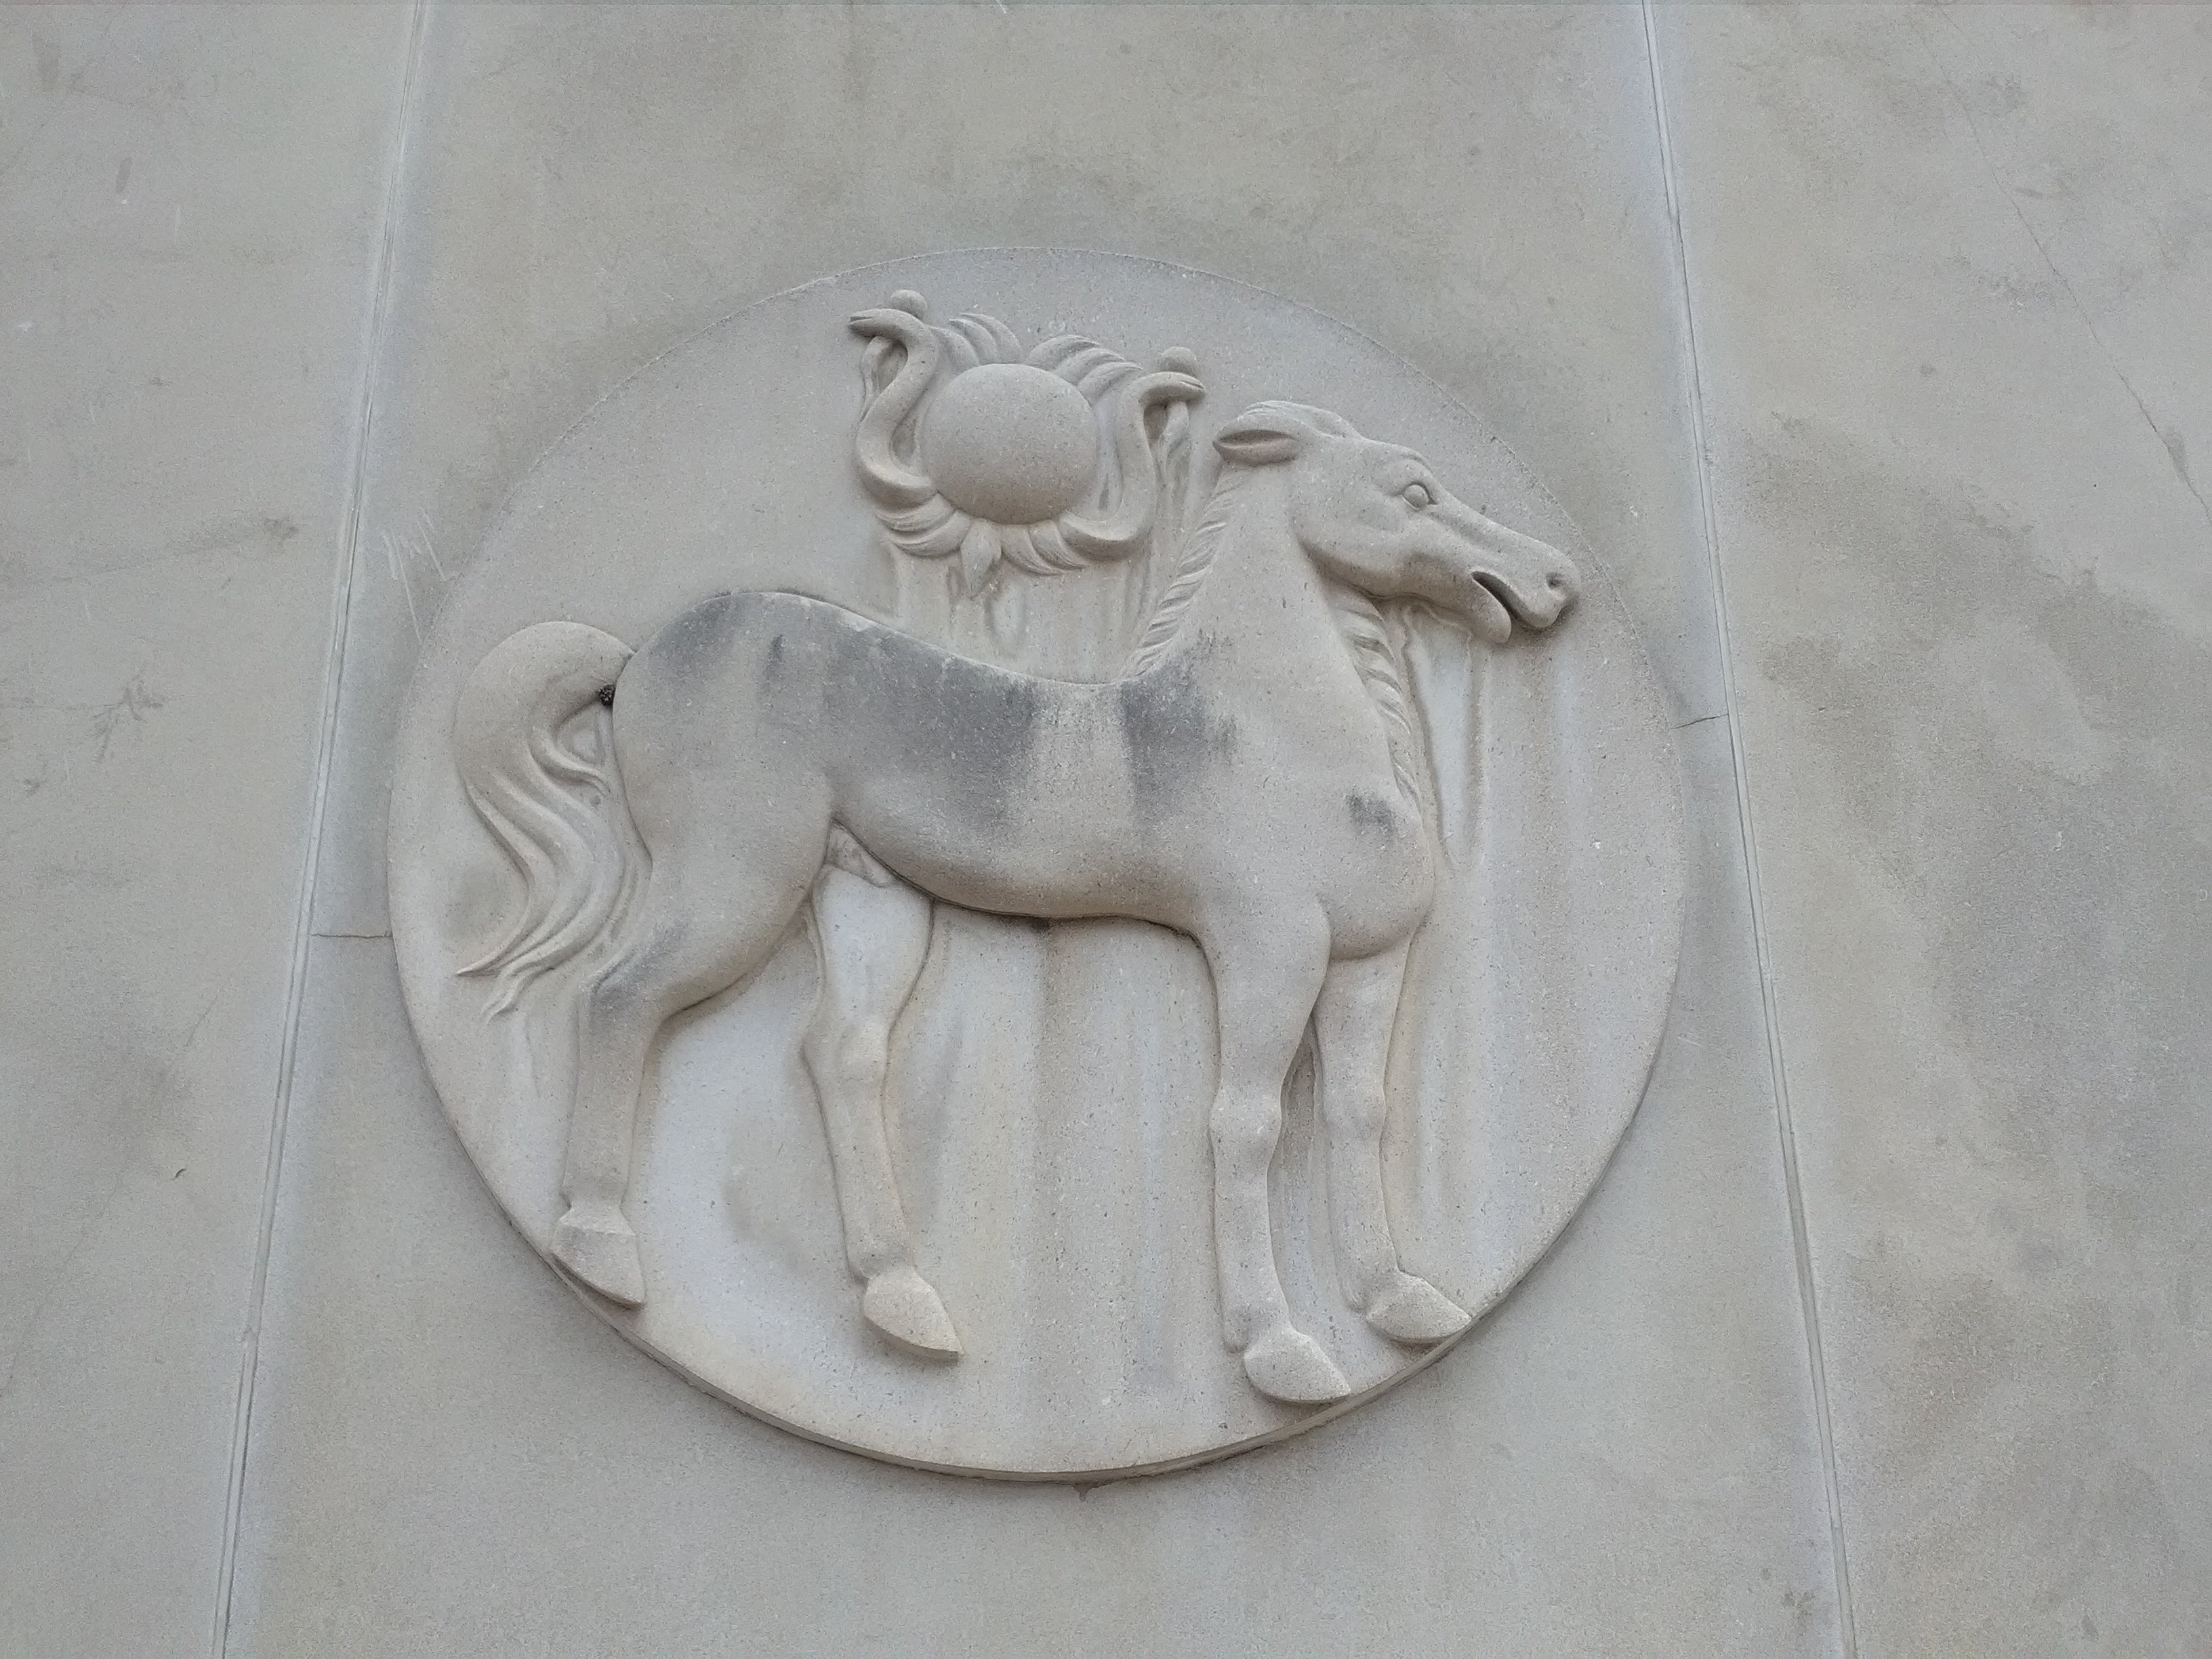 One of several stone sculptures on the West Fourth Street side of the former Bank of Carthage building.